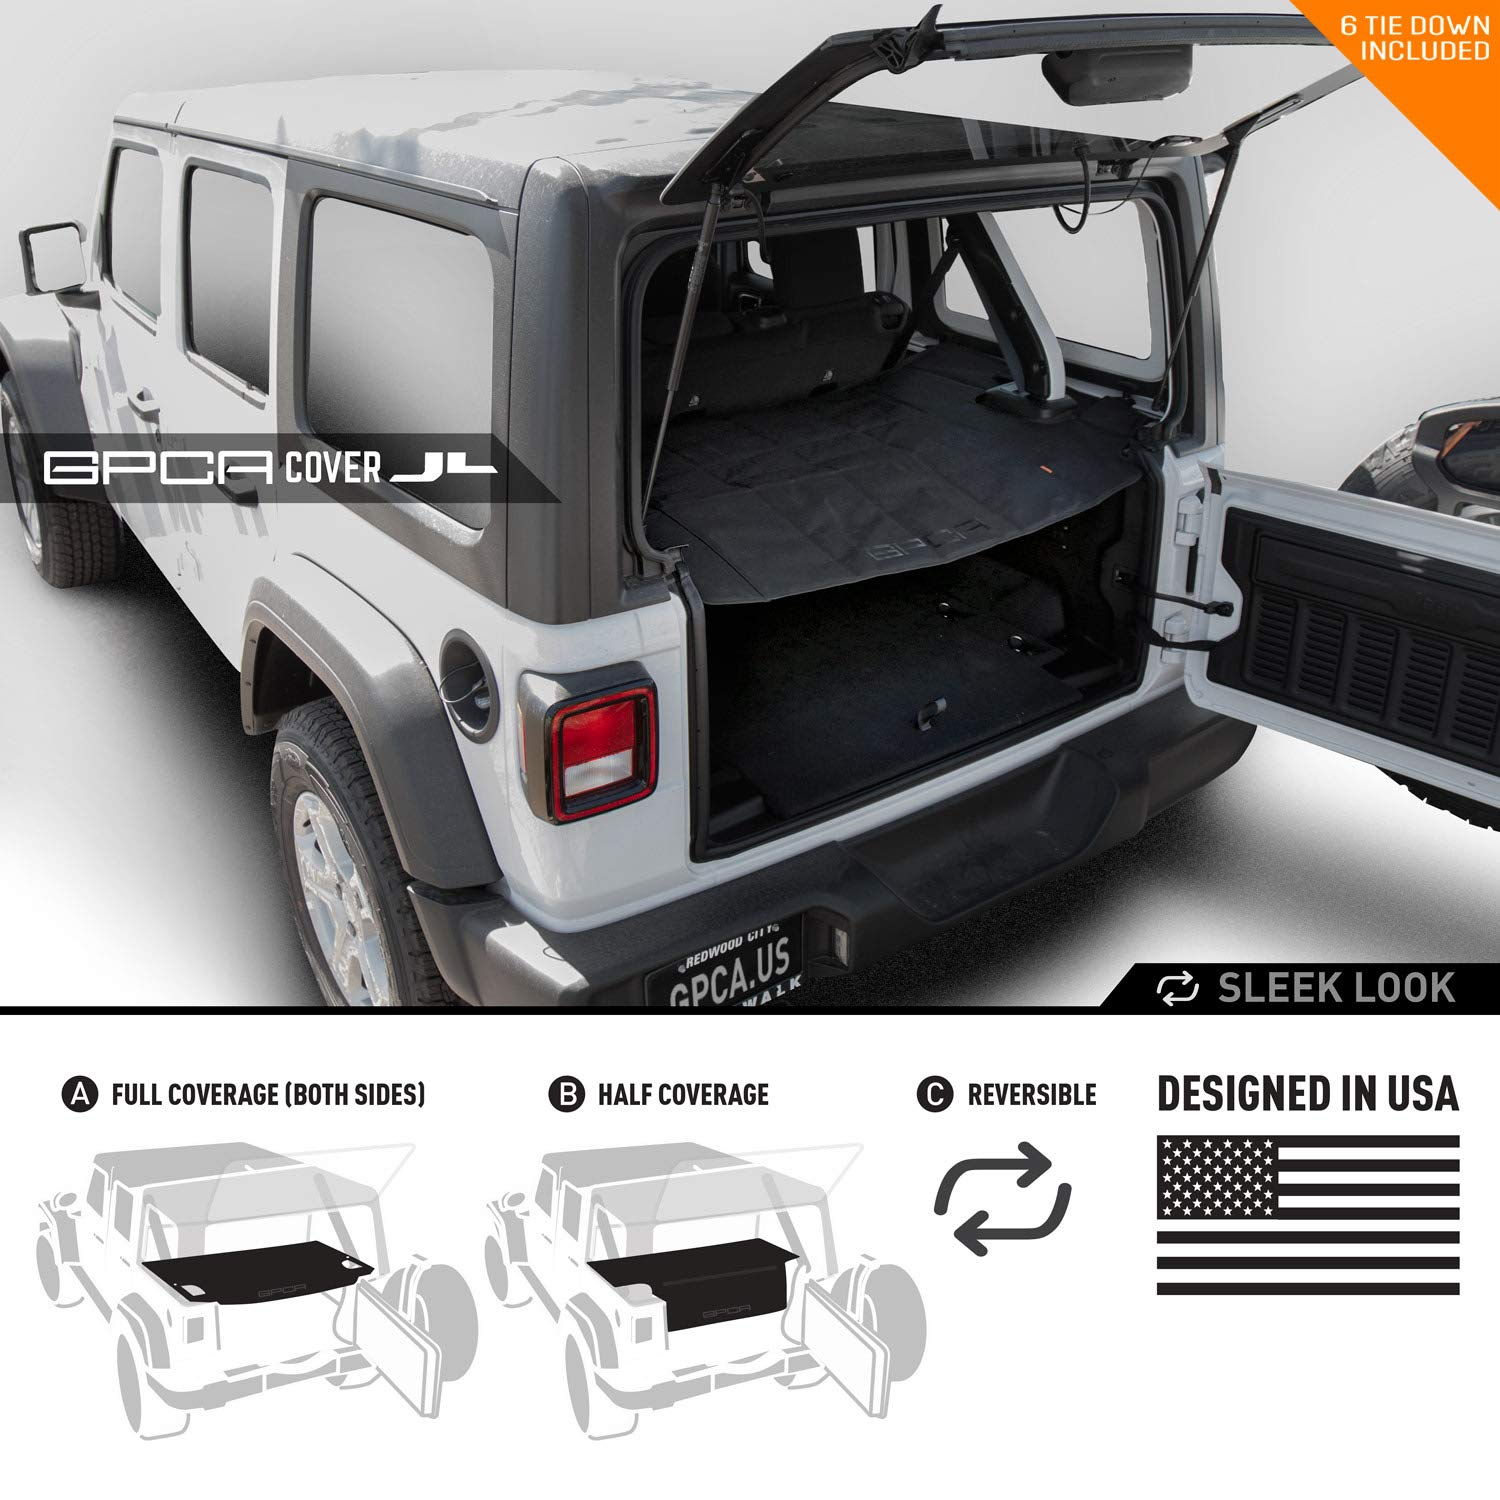 GPCA Wrangler 2018-2019 JL Unlimited Cargo Cover PRO - Reversible TOP ON/Topless 4DR JL Sports/Sahara/ Freedom/Rubicon - Hardtop GPCA Products